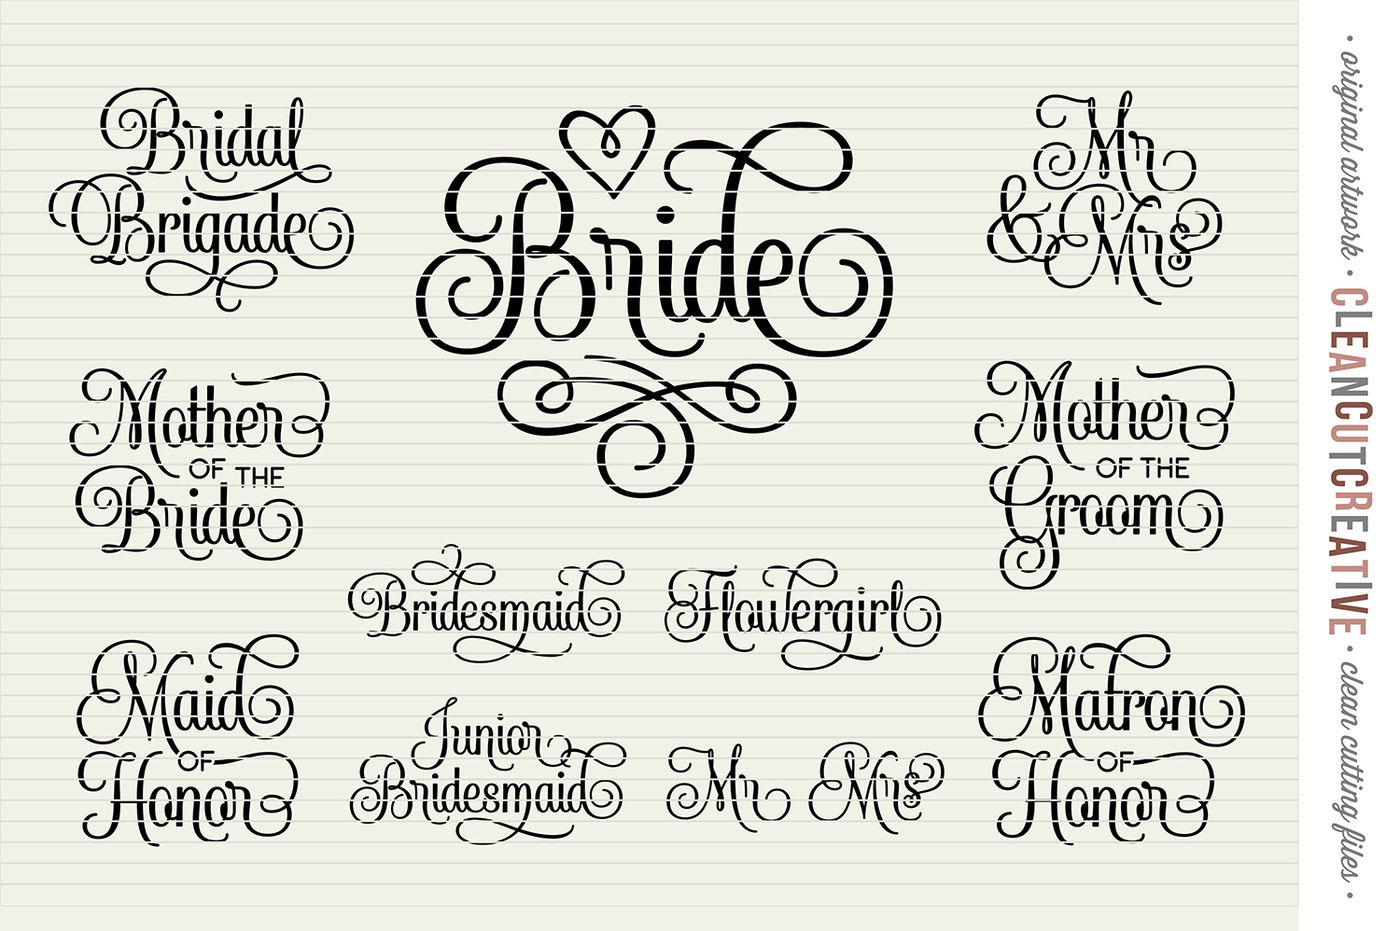 Bridal Party Wedding Party Set Of 11 Svg Dxf Eps Png Cricut Silhouette Clean Cutting Files By Cleancutcreative Thehungryjpeg Com